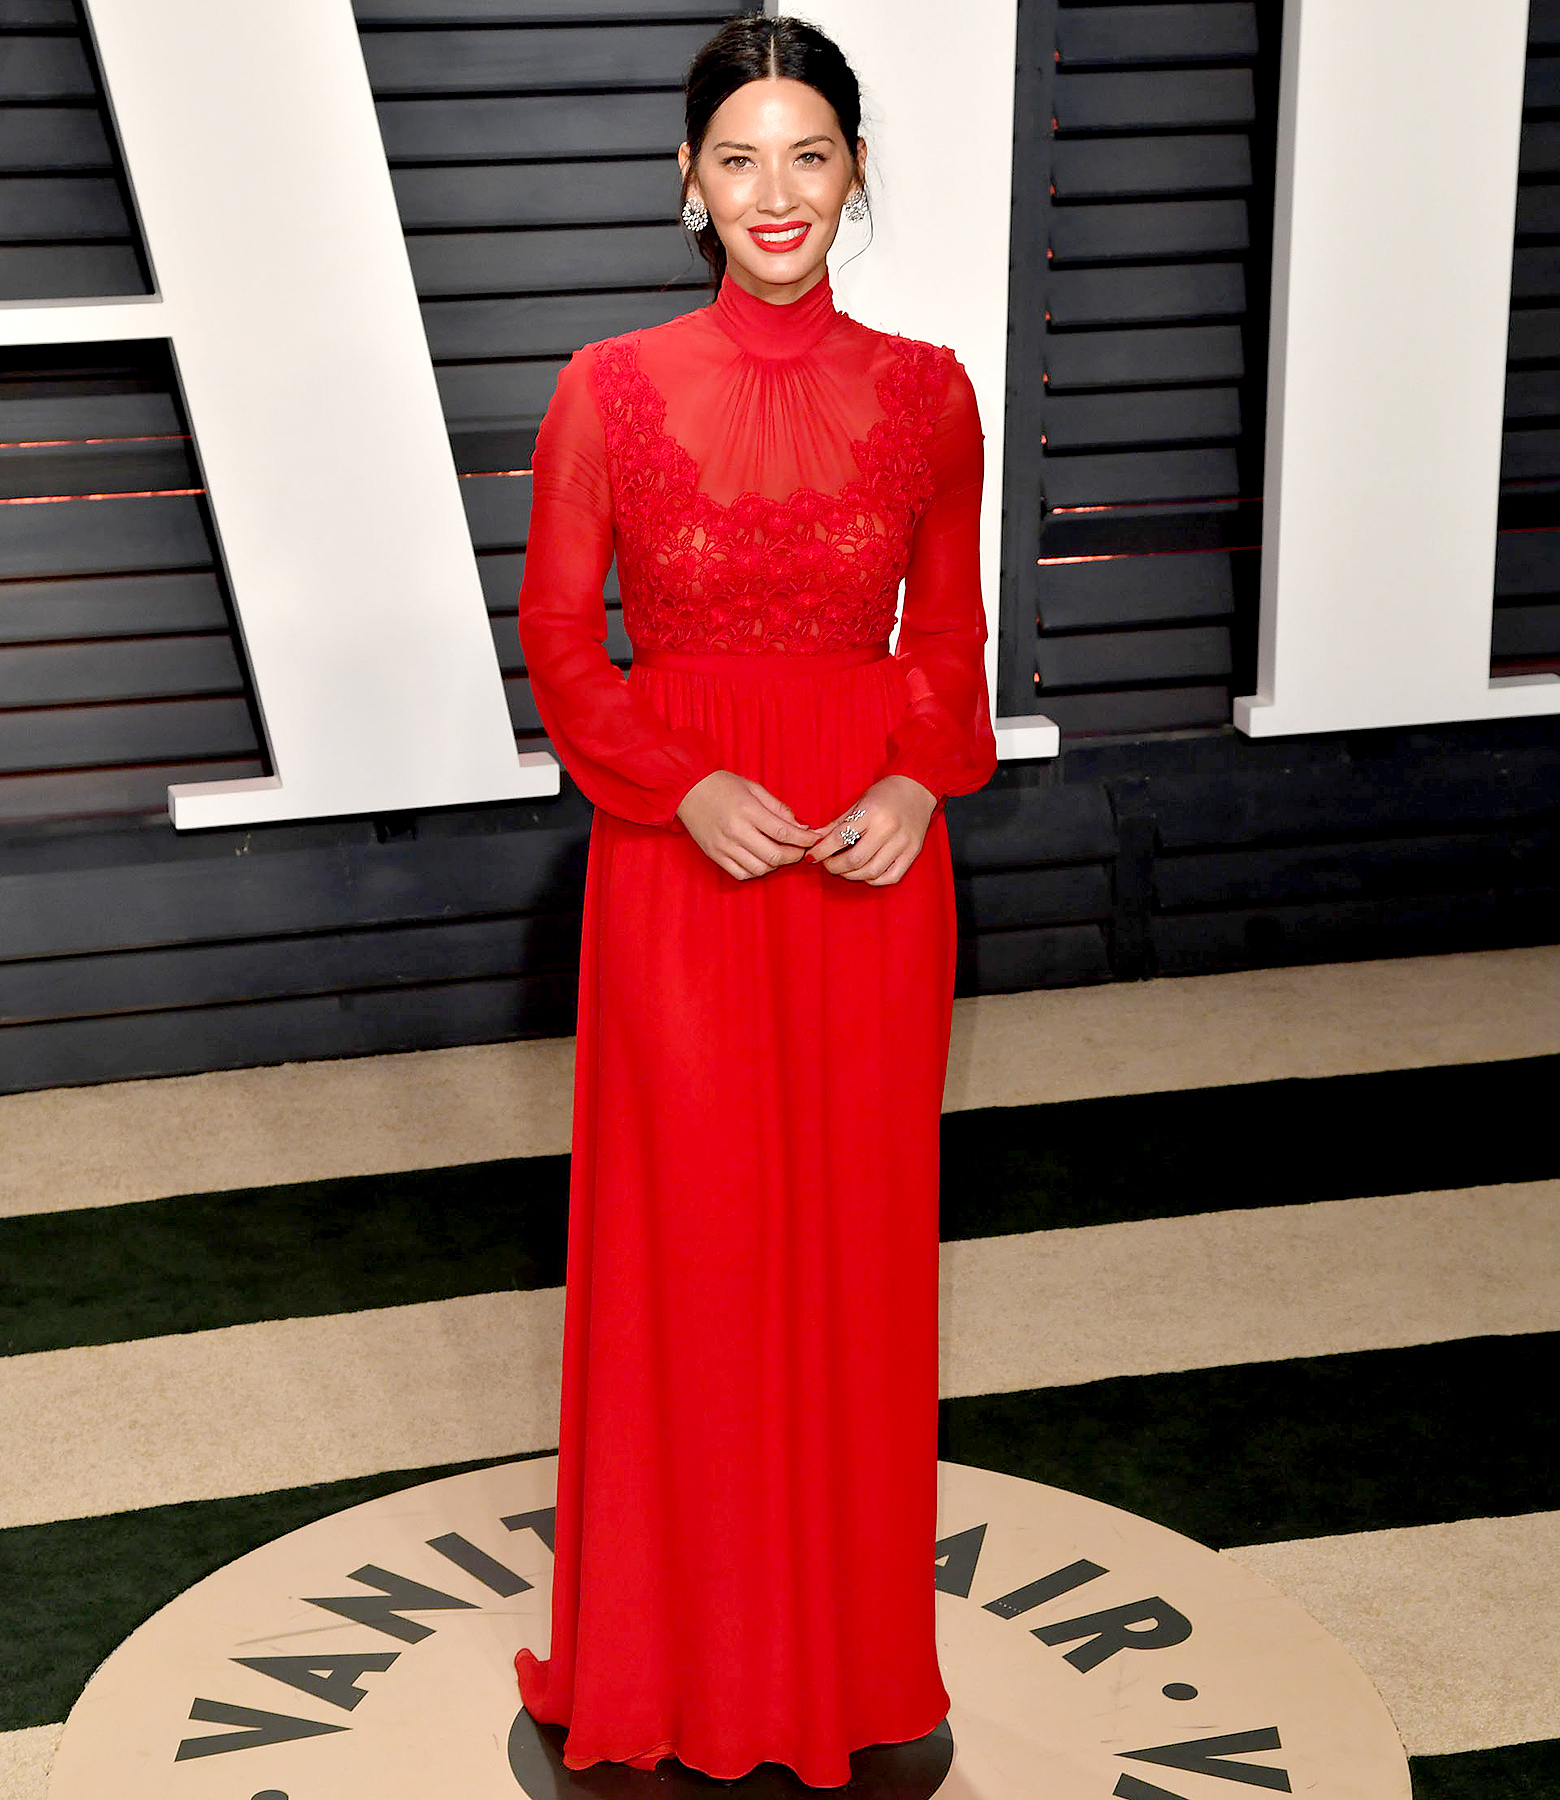 Olivia Munn attends the 2017 'Vanity Fair' Oscar party hosted by Graydon Carter at the Wallis Annenberg Center for the Performing Arts on Feb. 26, 2017, in Beverly Hills.